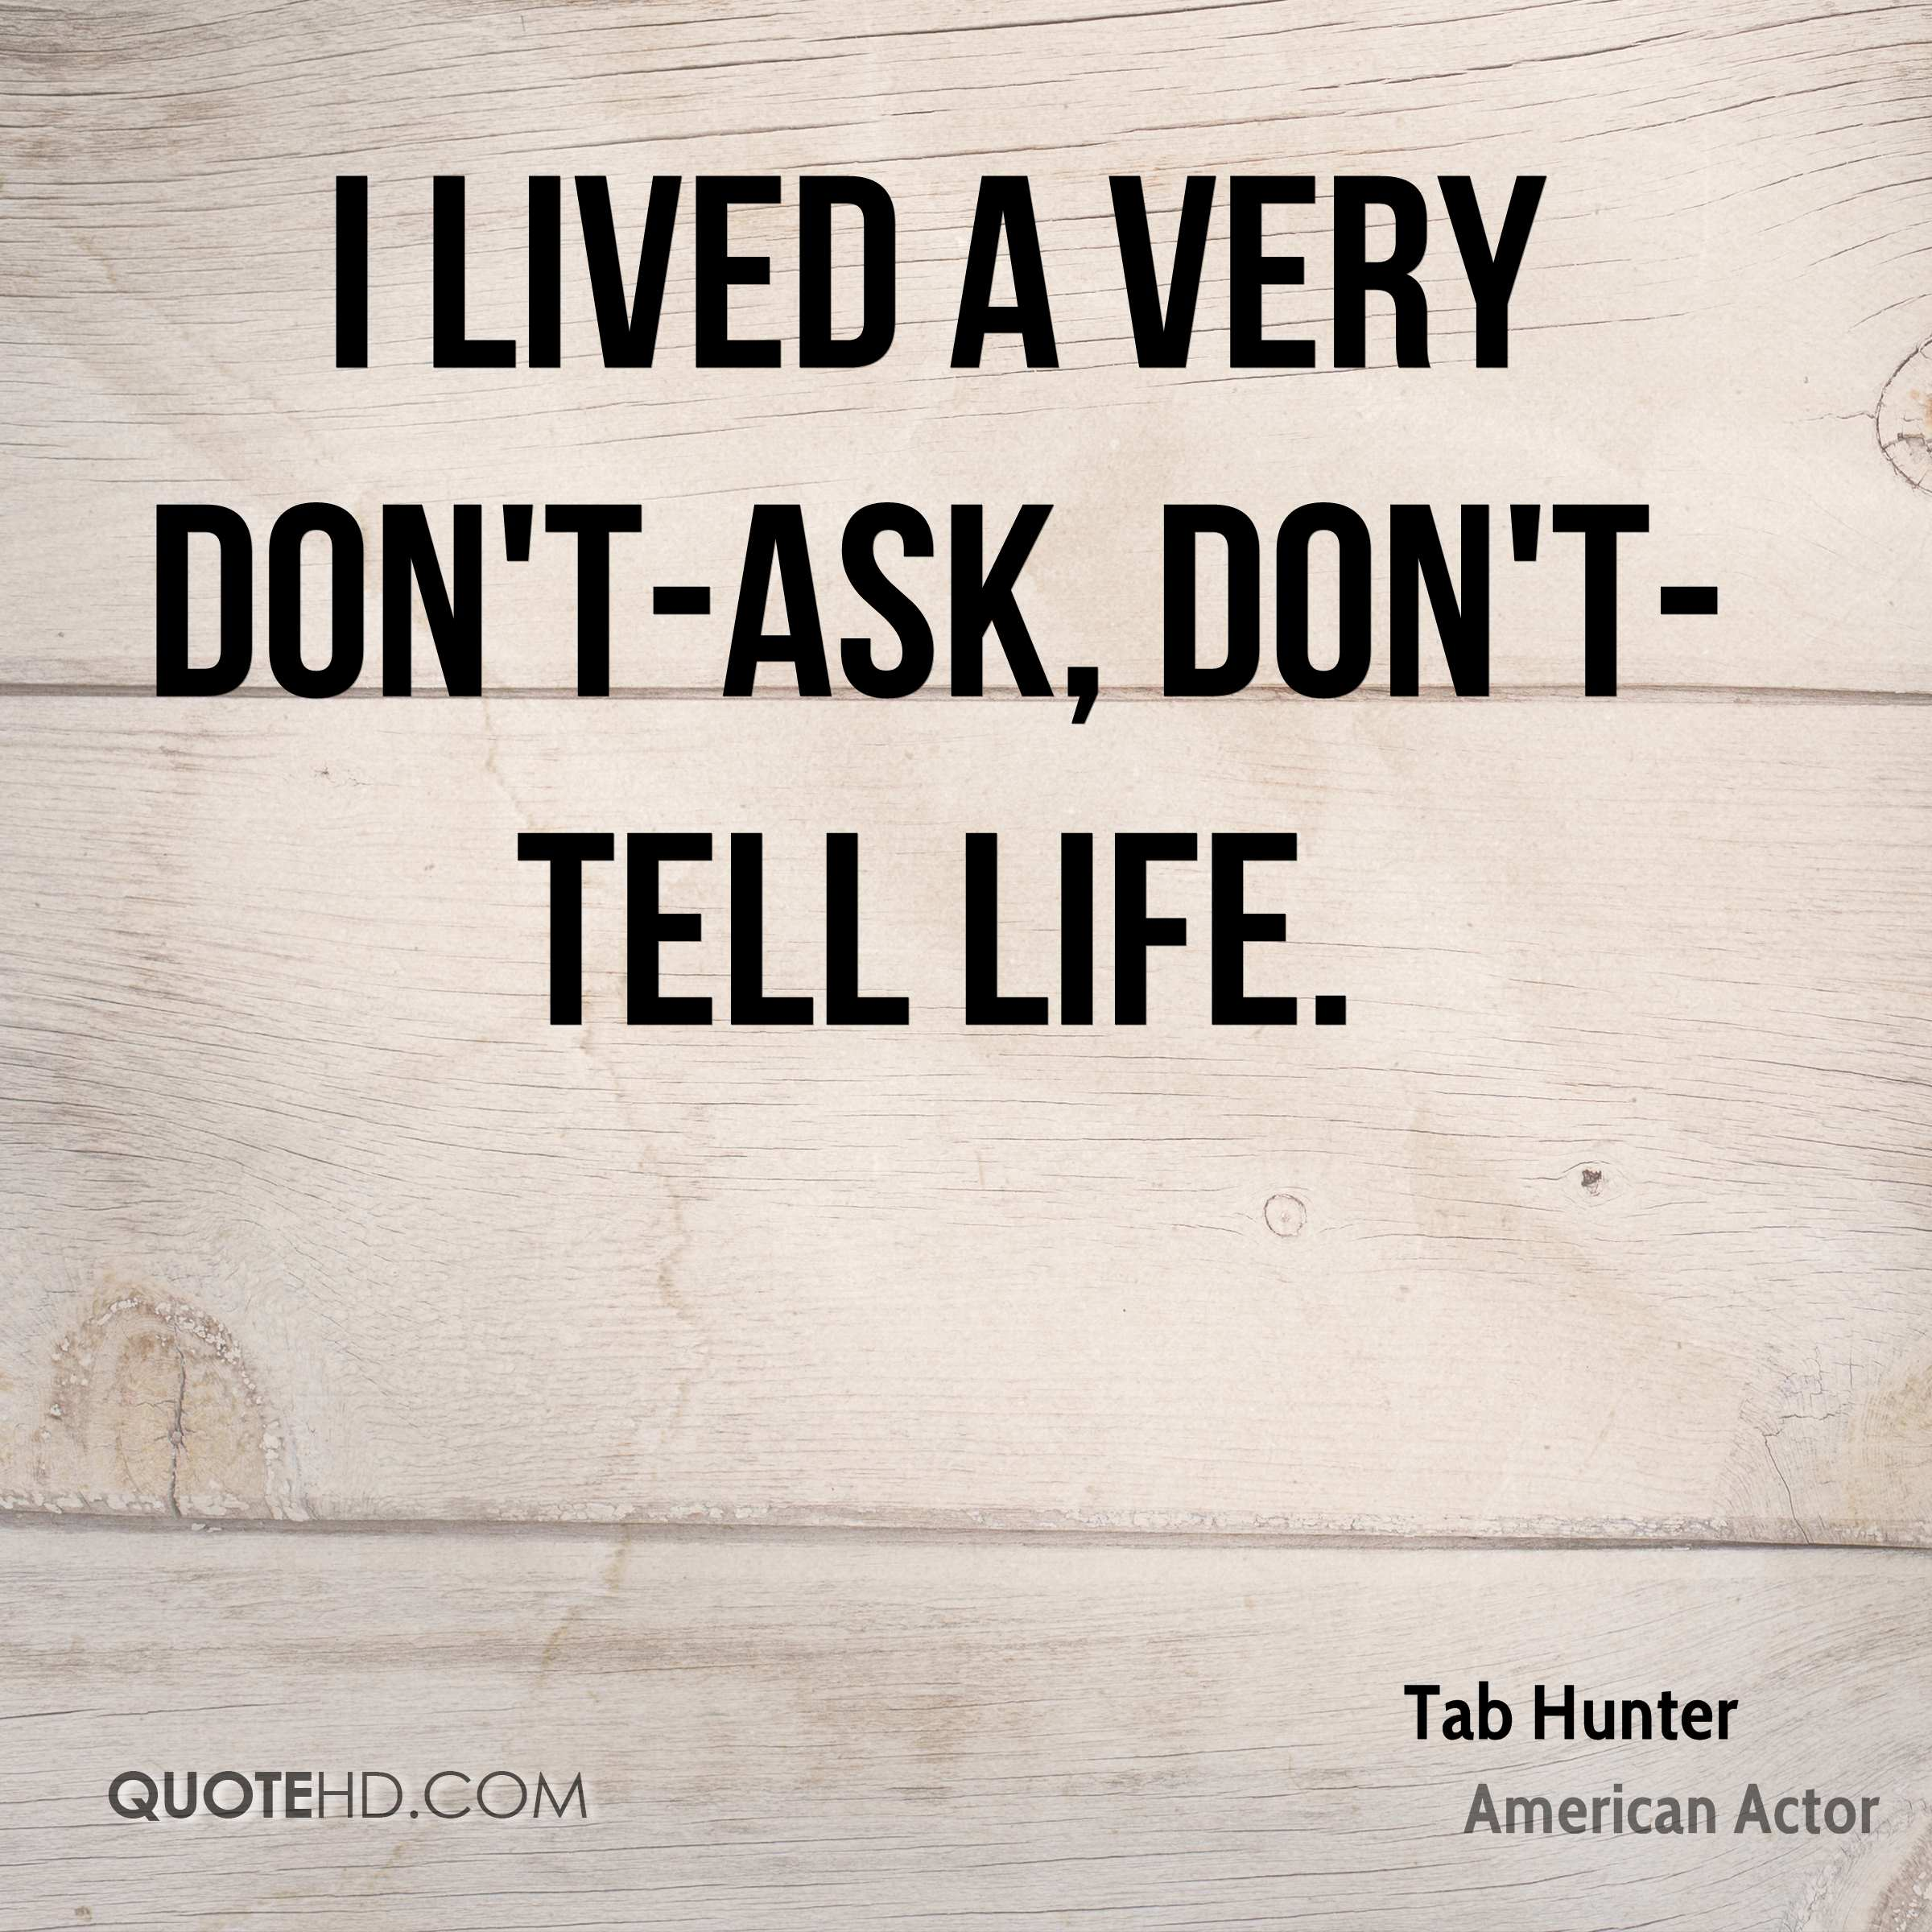 I lived a very don't-ask, don't-tell life.